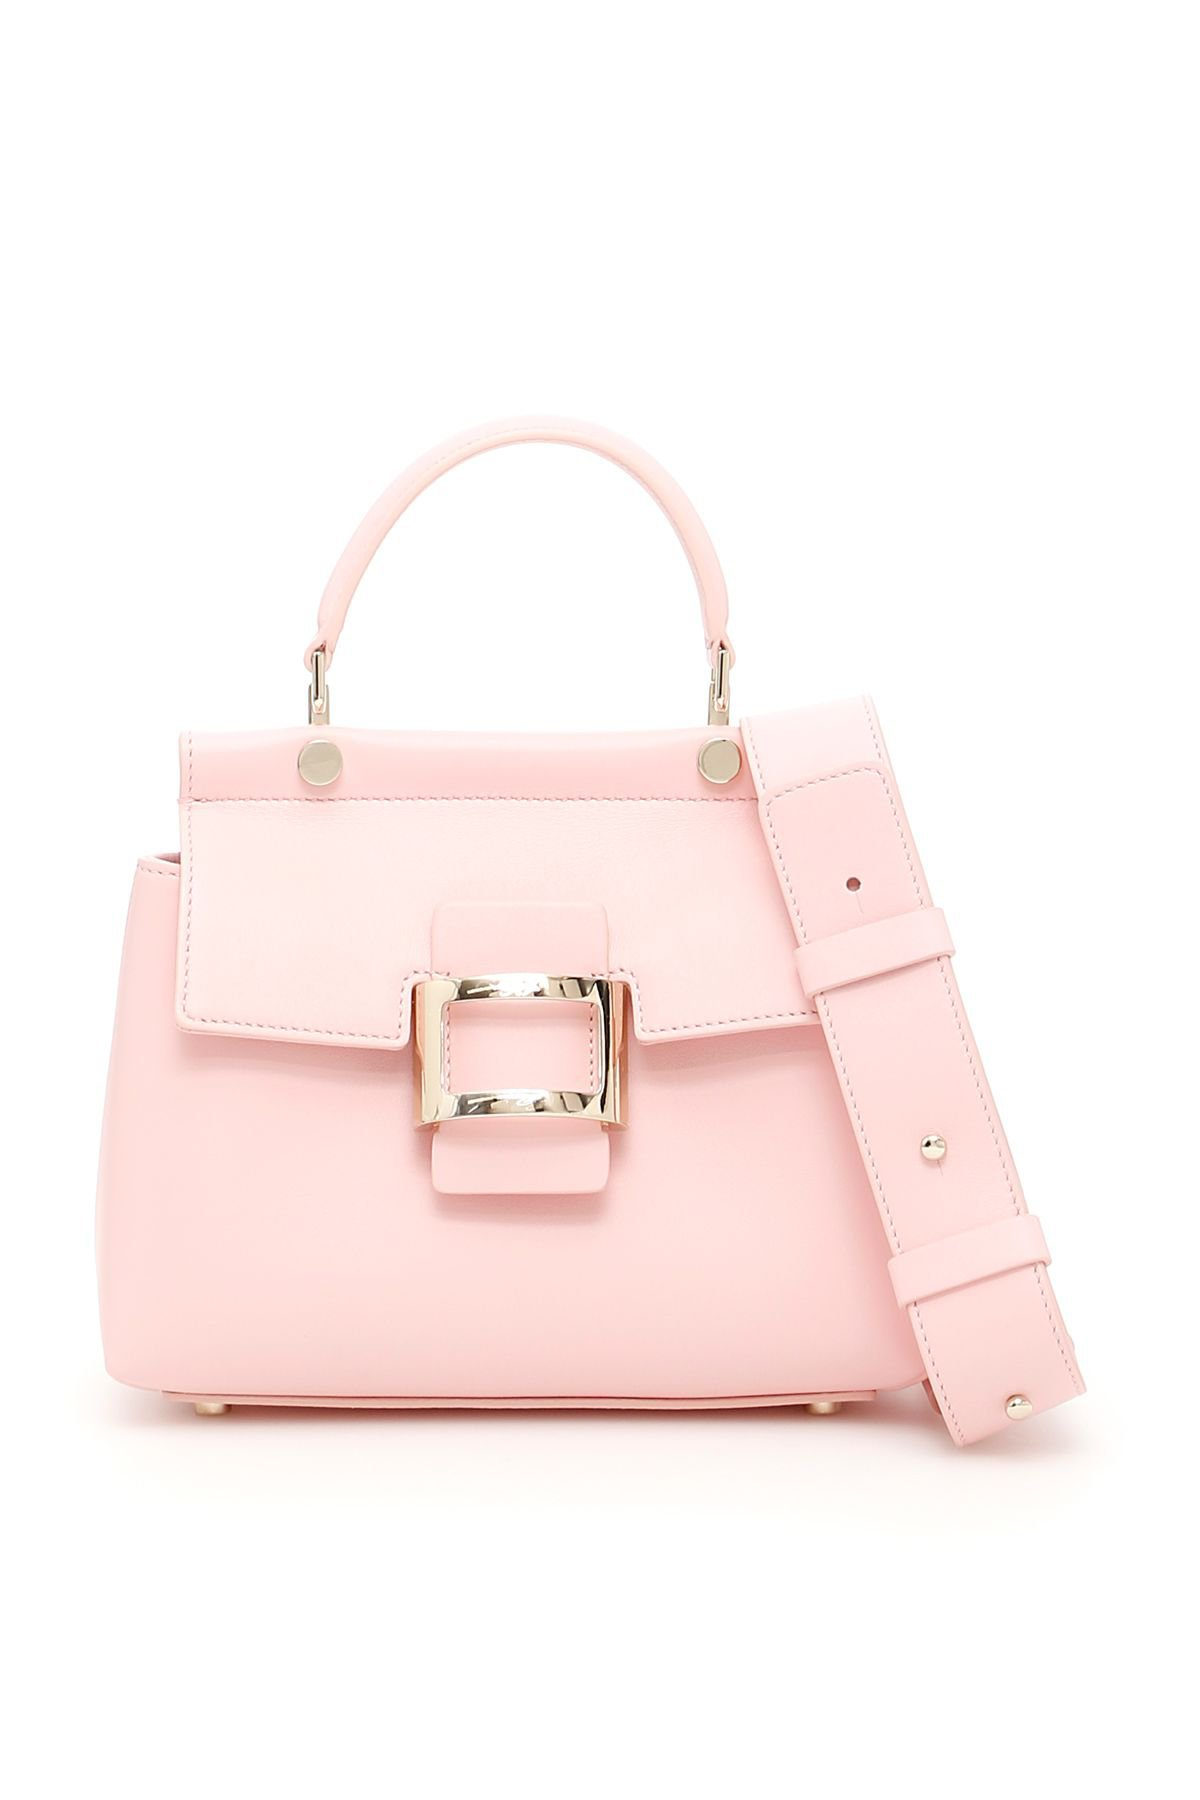 Roger Vivier Viv Cabas Mini Bag